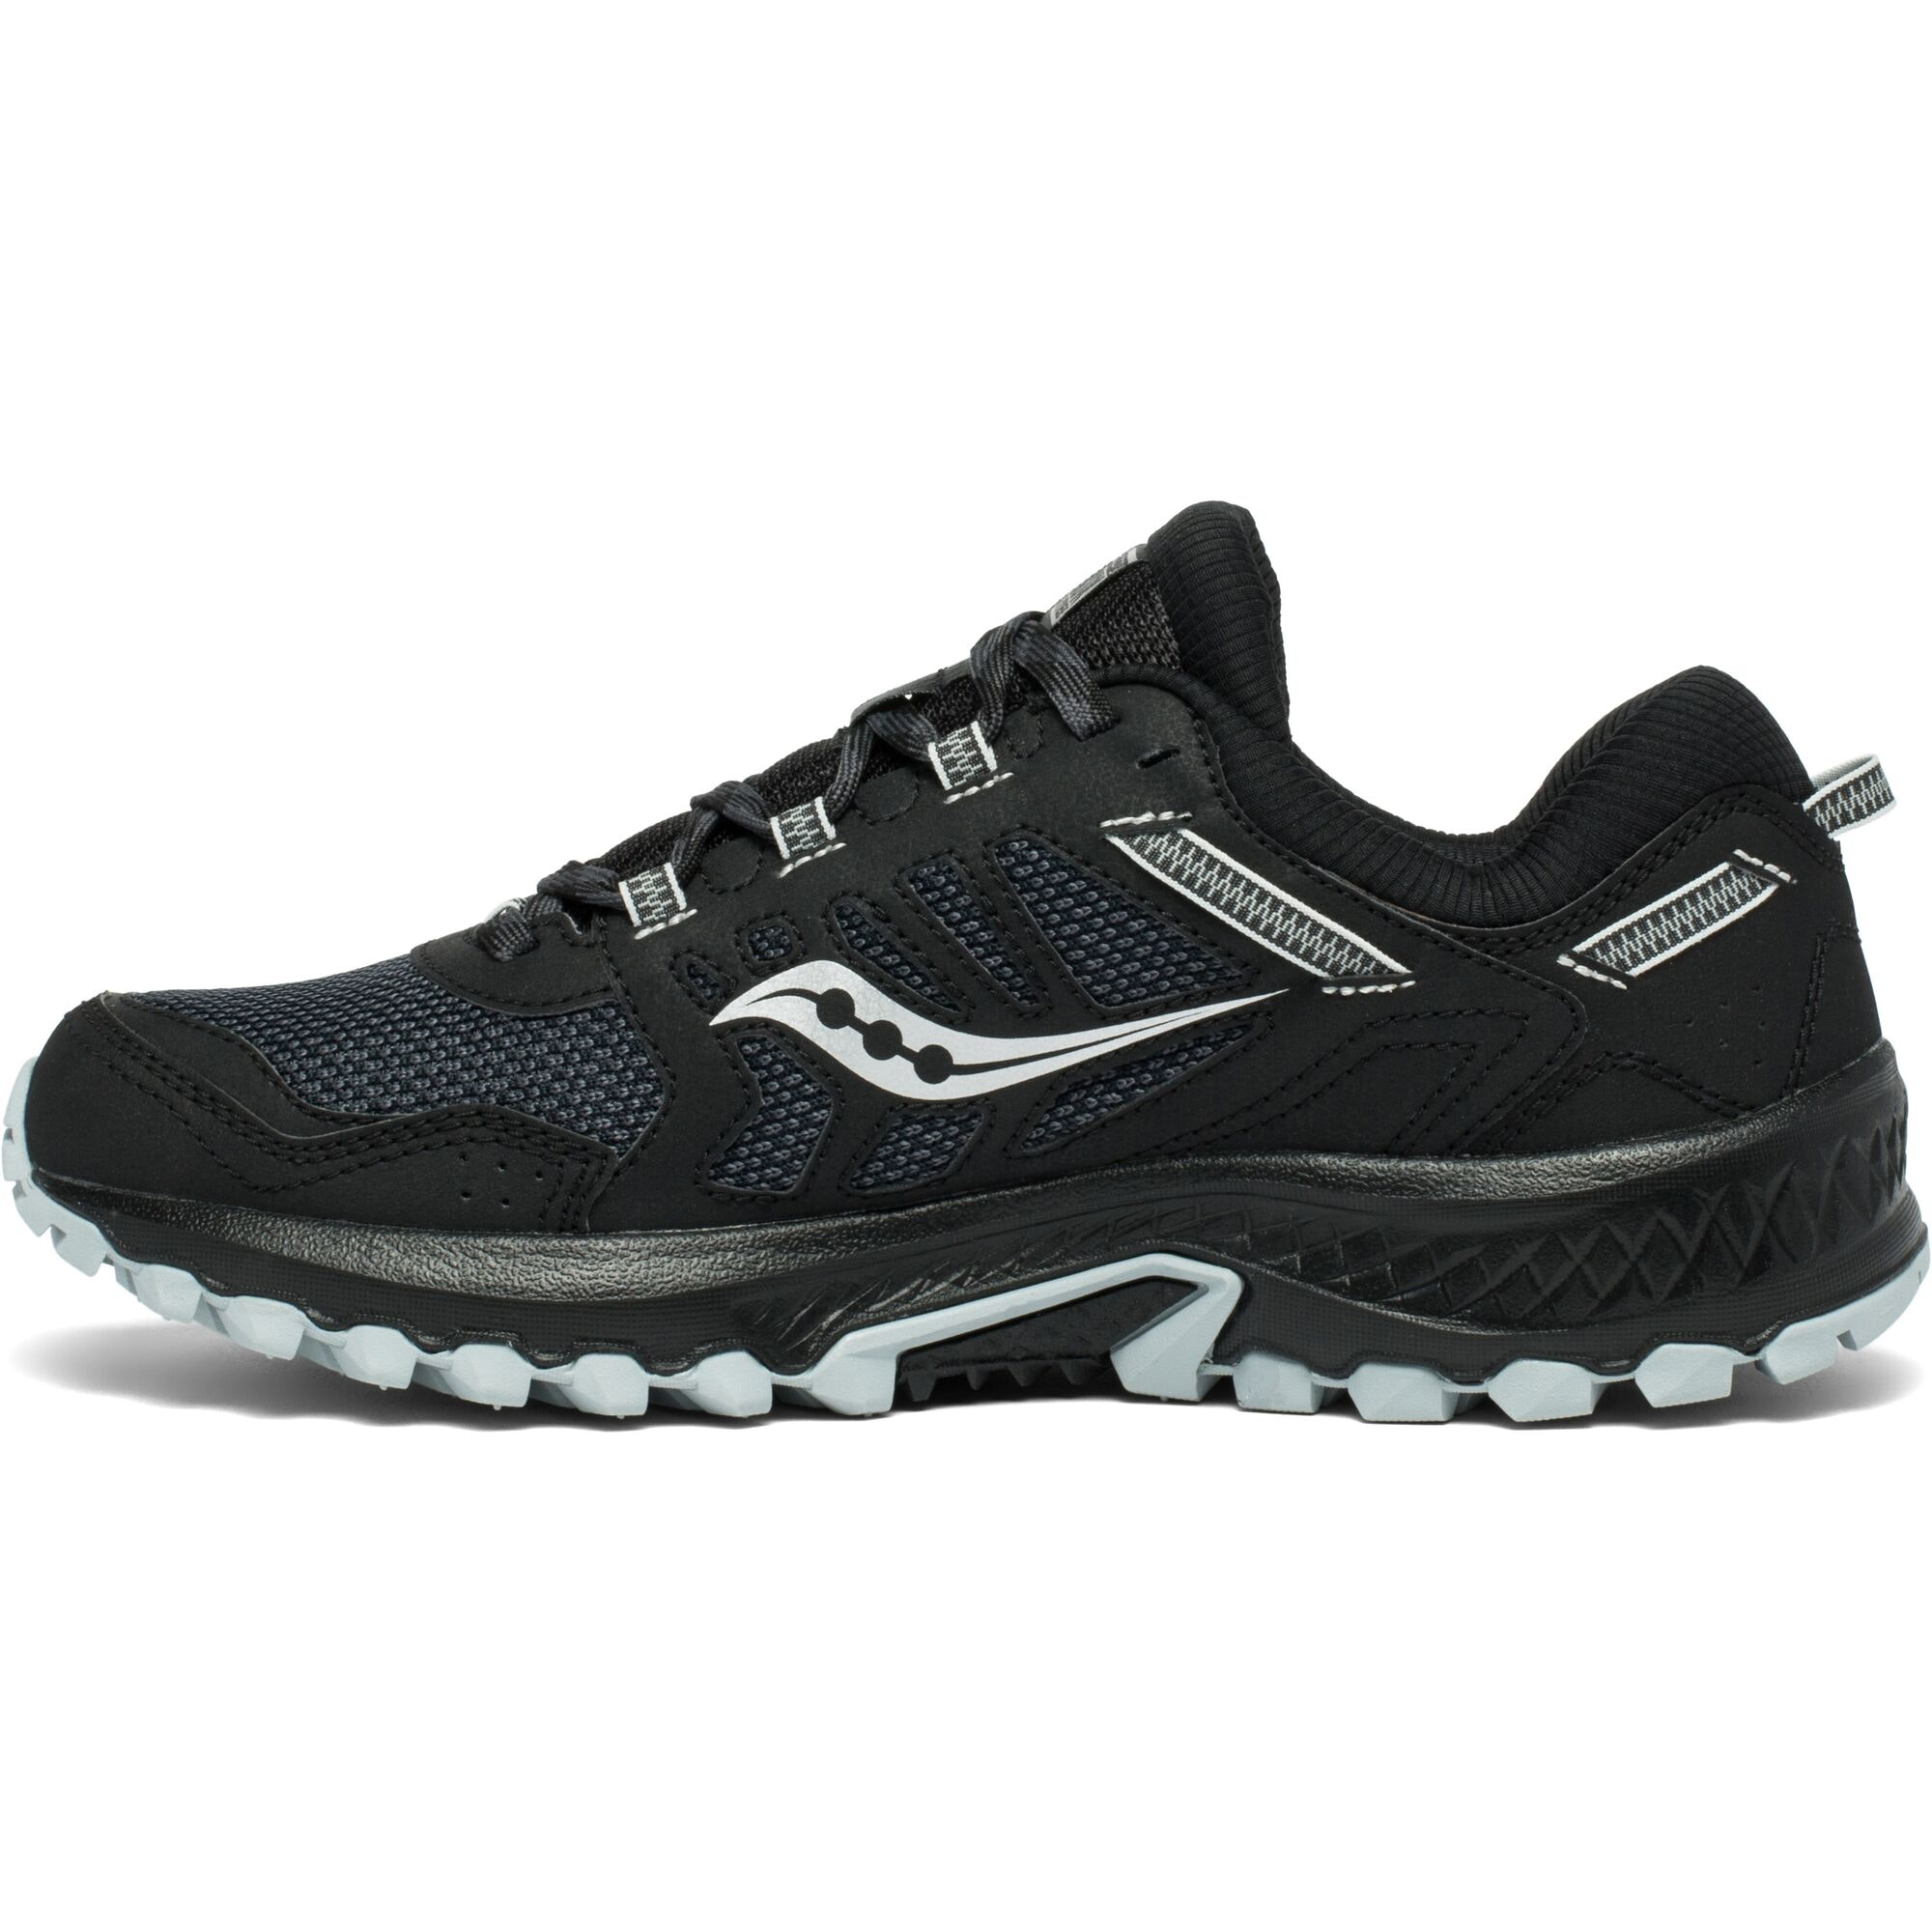 Trail Running Shoes, & Waterproof Trail Clothes